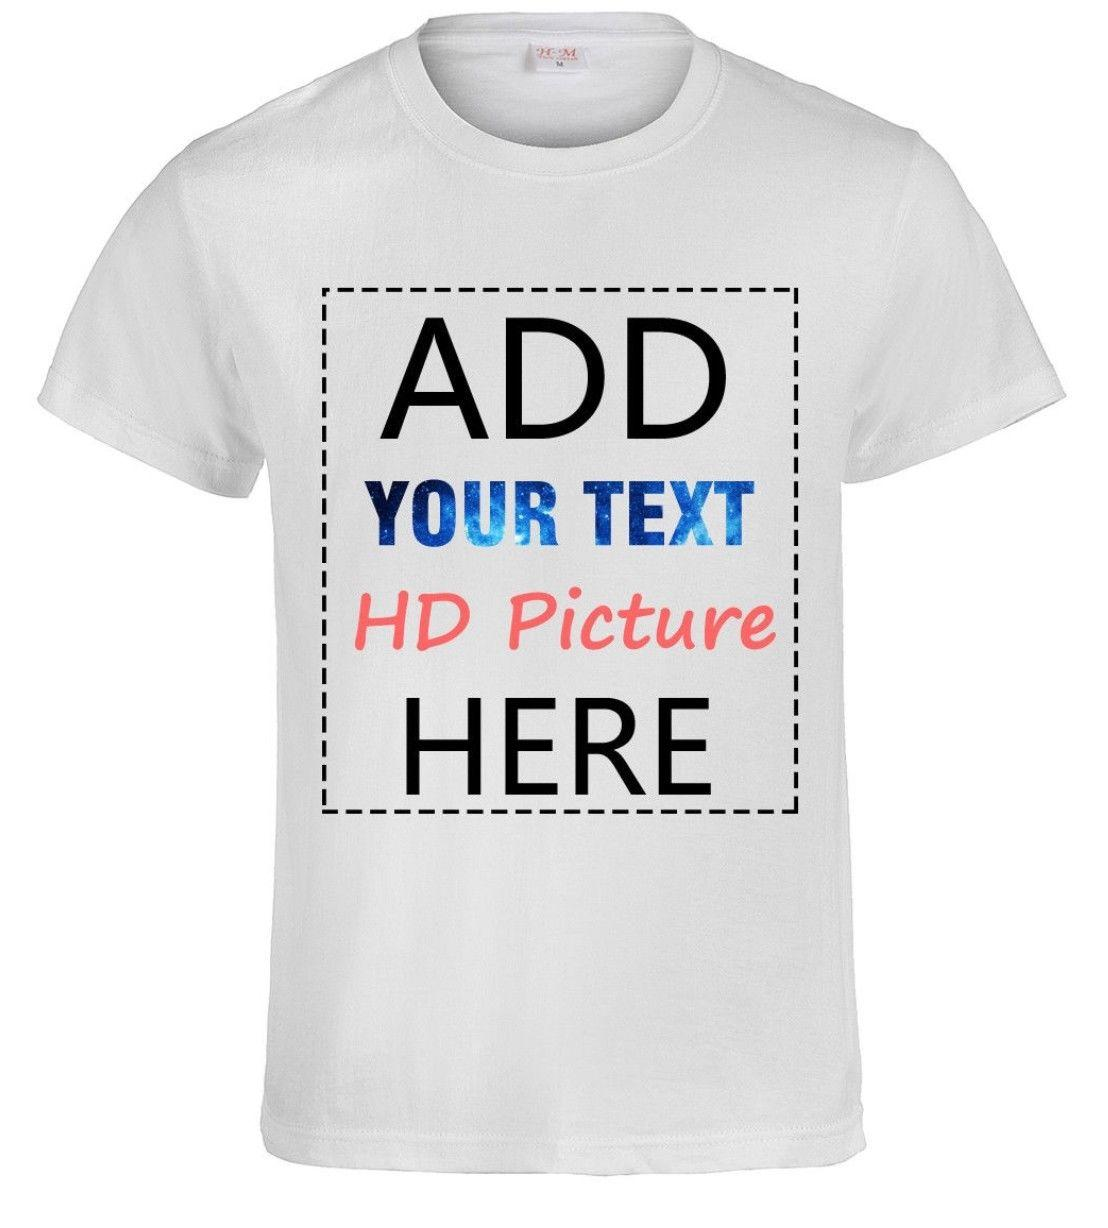 7a9c65e99 Custom Printed Your Own Design Logo Name Personalized Men's Cotton T-Shirt  Tee Funny 100% Cotton T Shirt jersey Print t-shirt